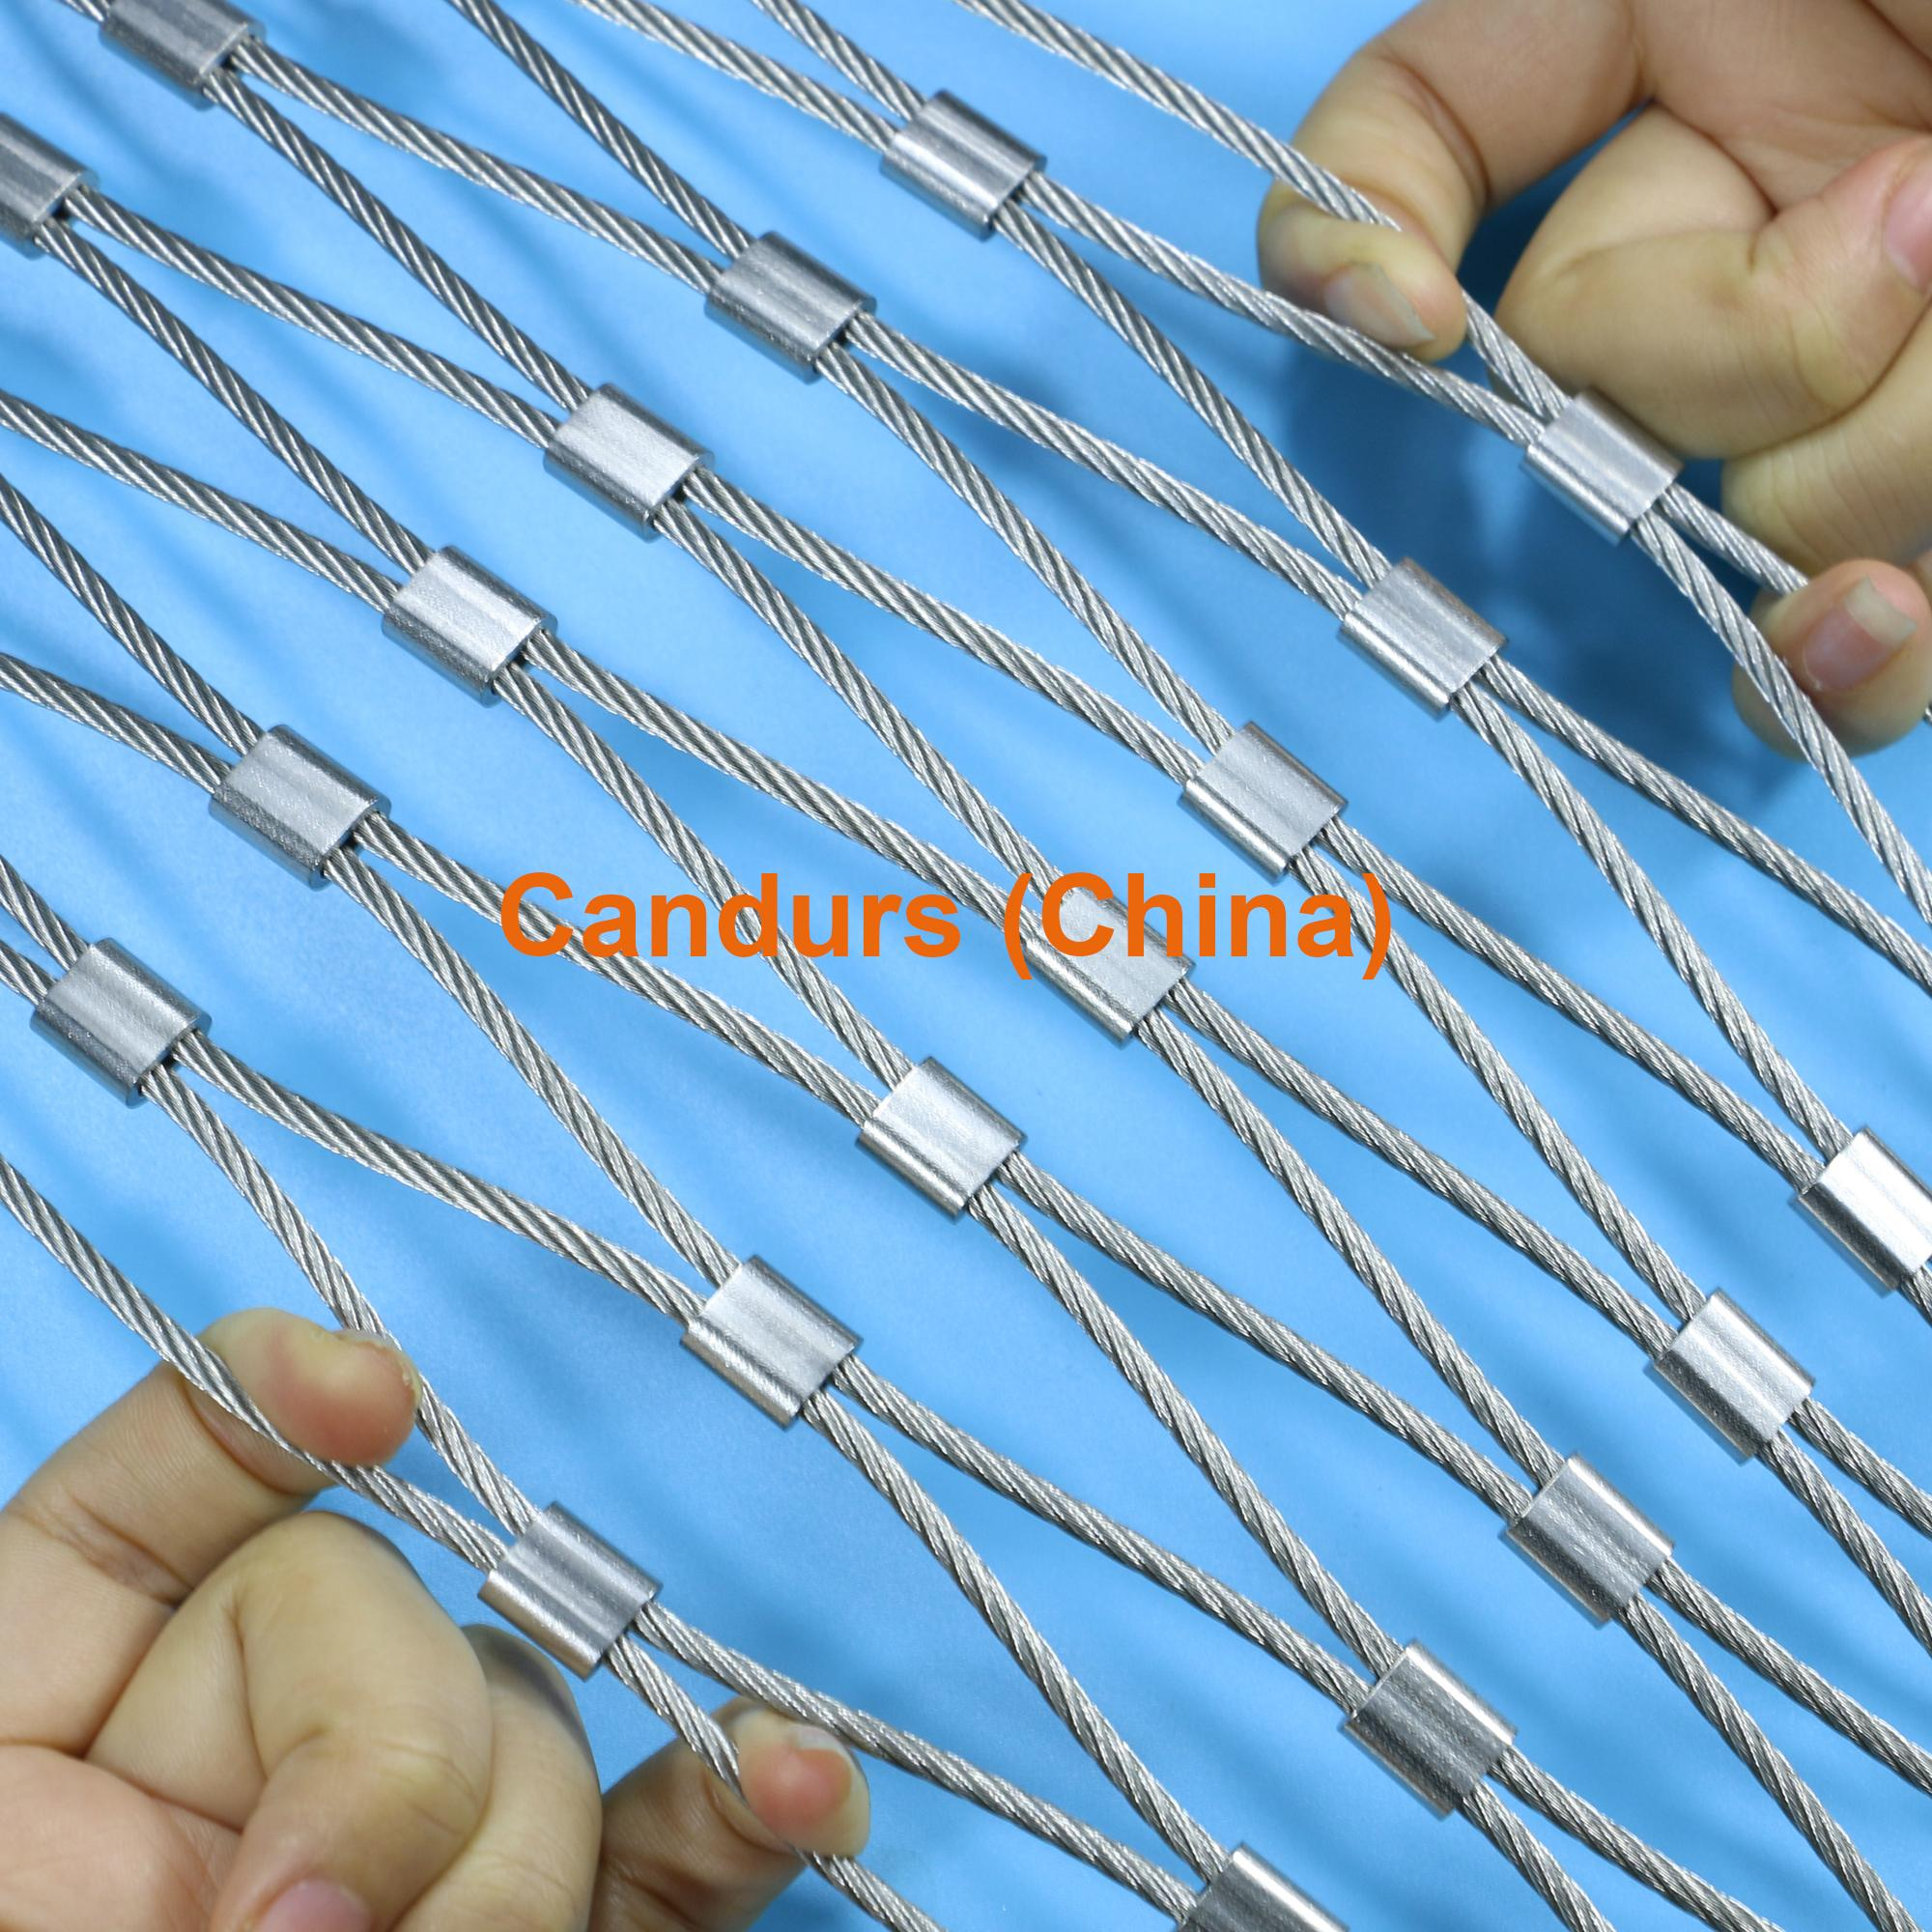 Stainless Steel Wire Product : Ferruled stainless steel wire rope zoo mesh decorrope